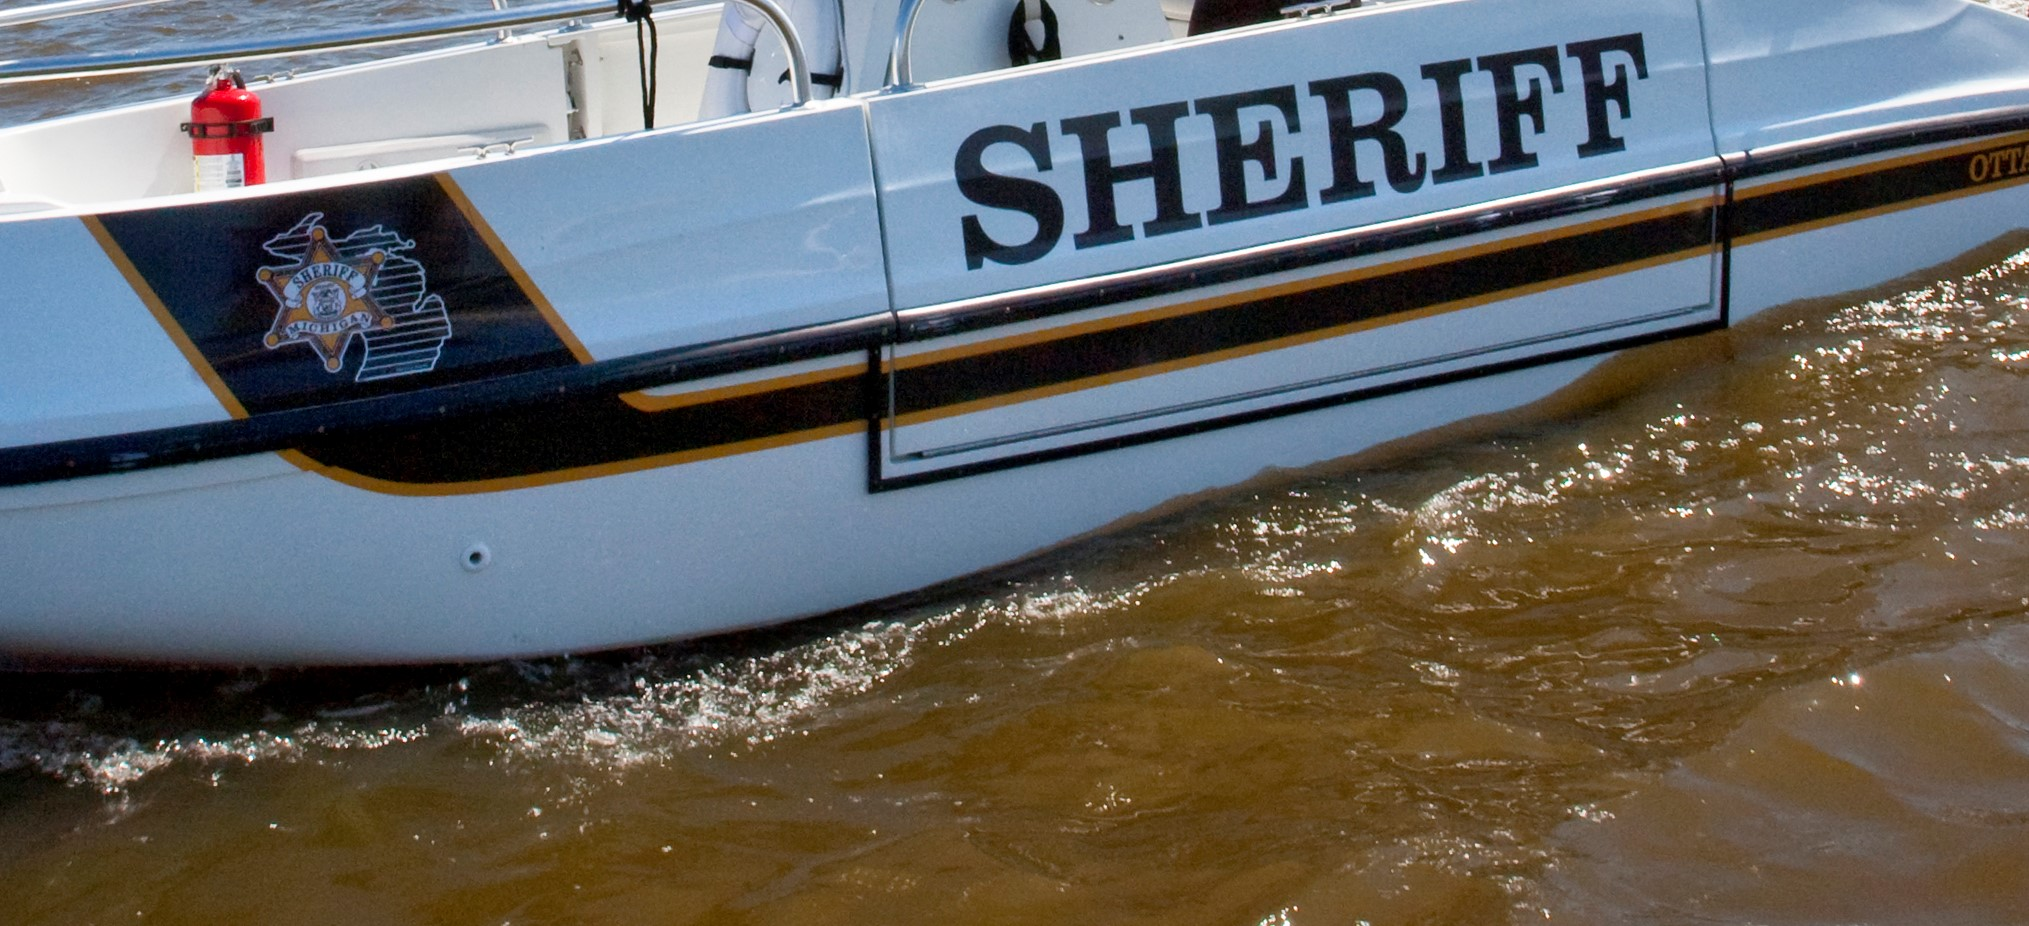 Alabama man drowns in Lake Michigan while trying to retrieve boat